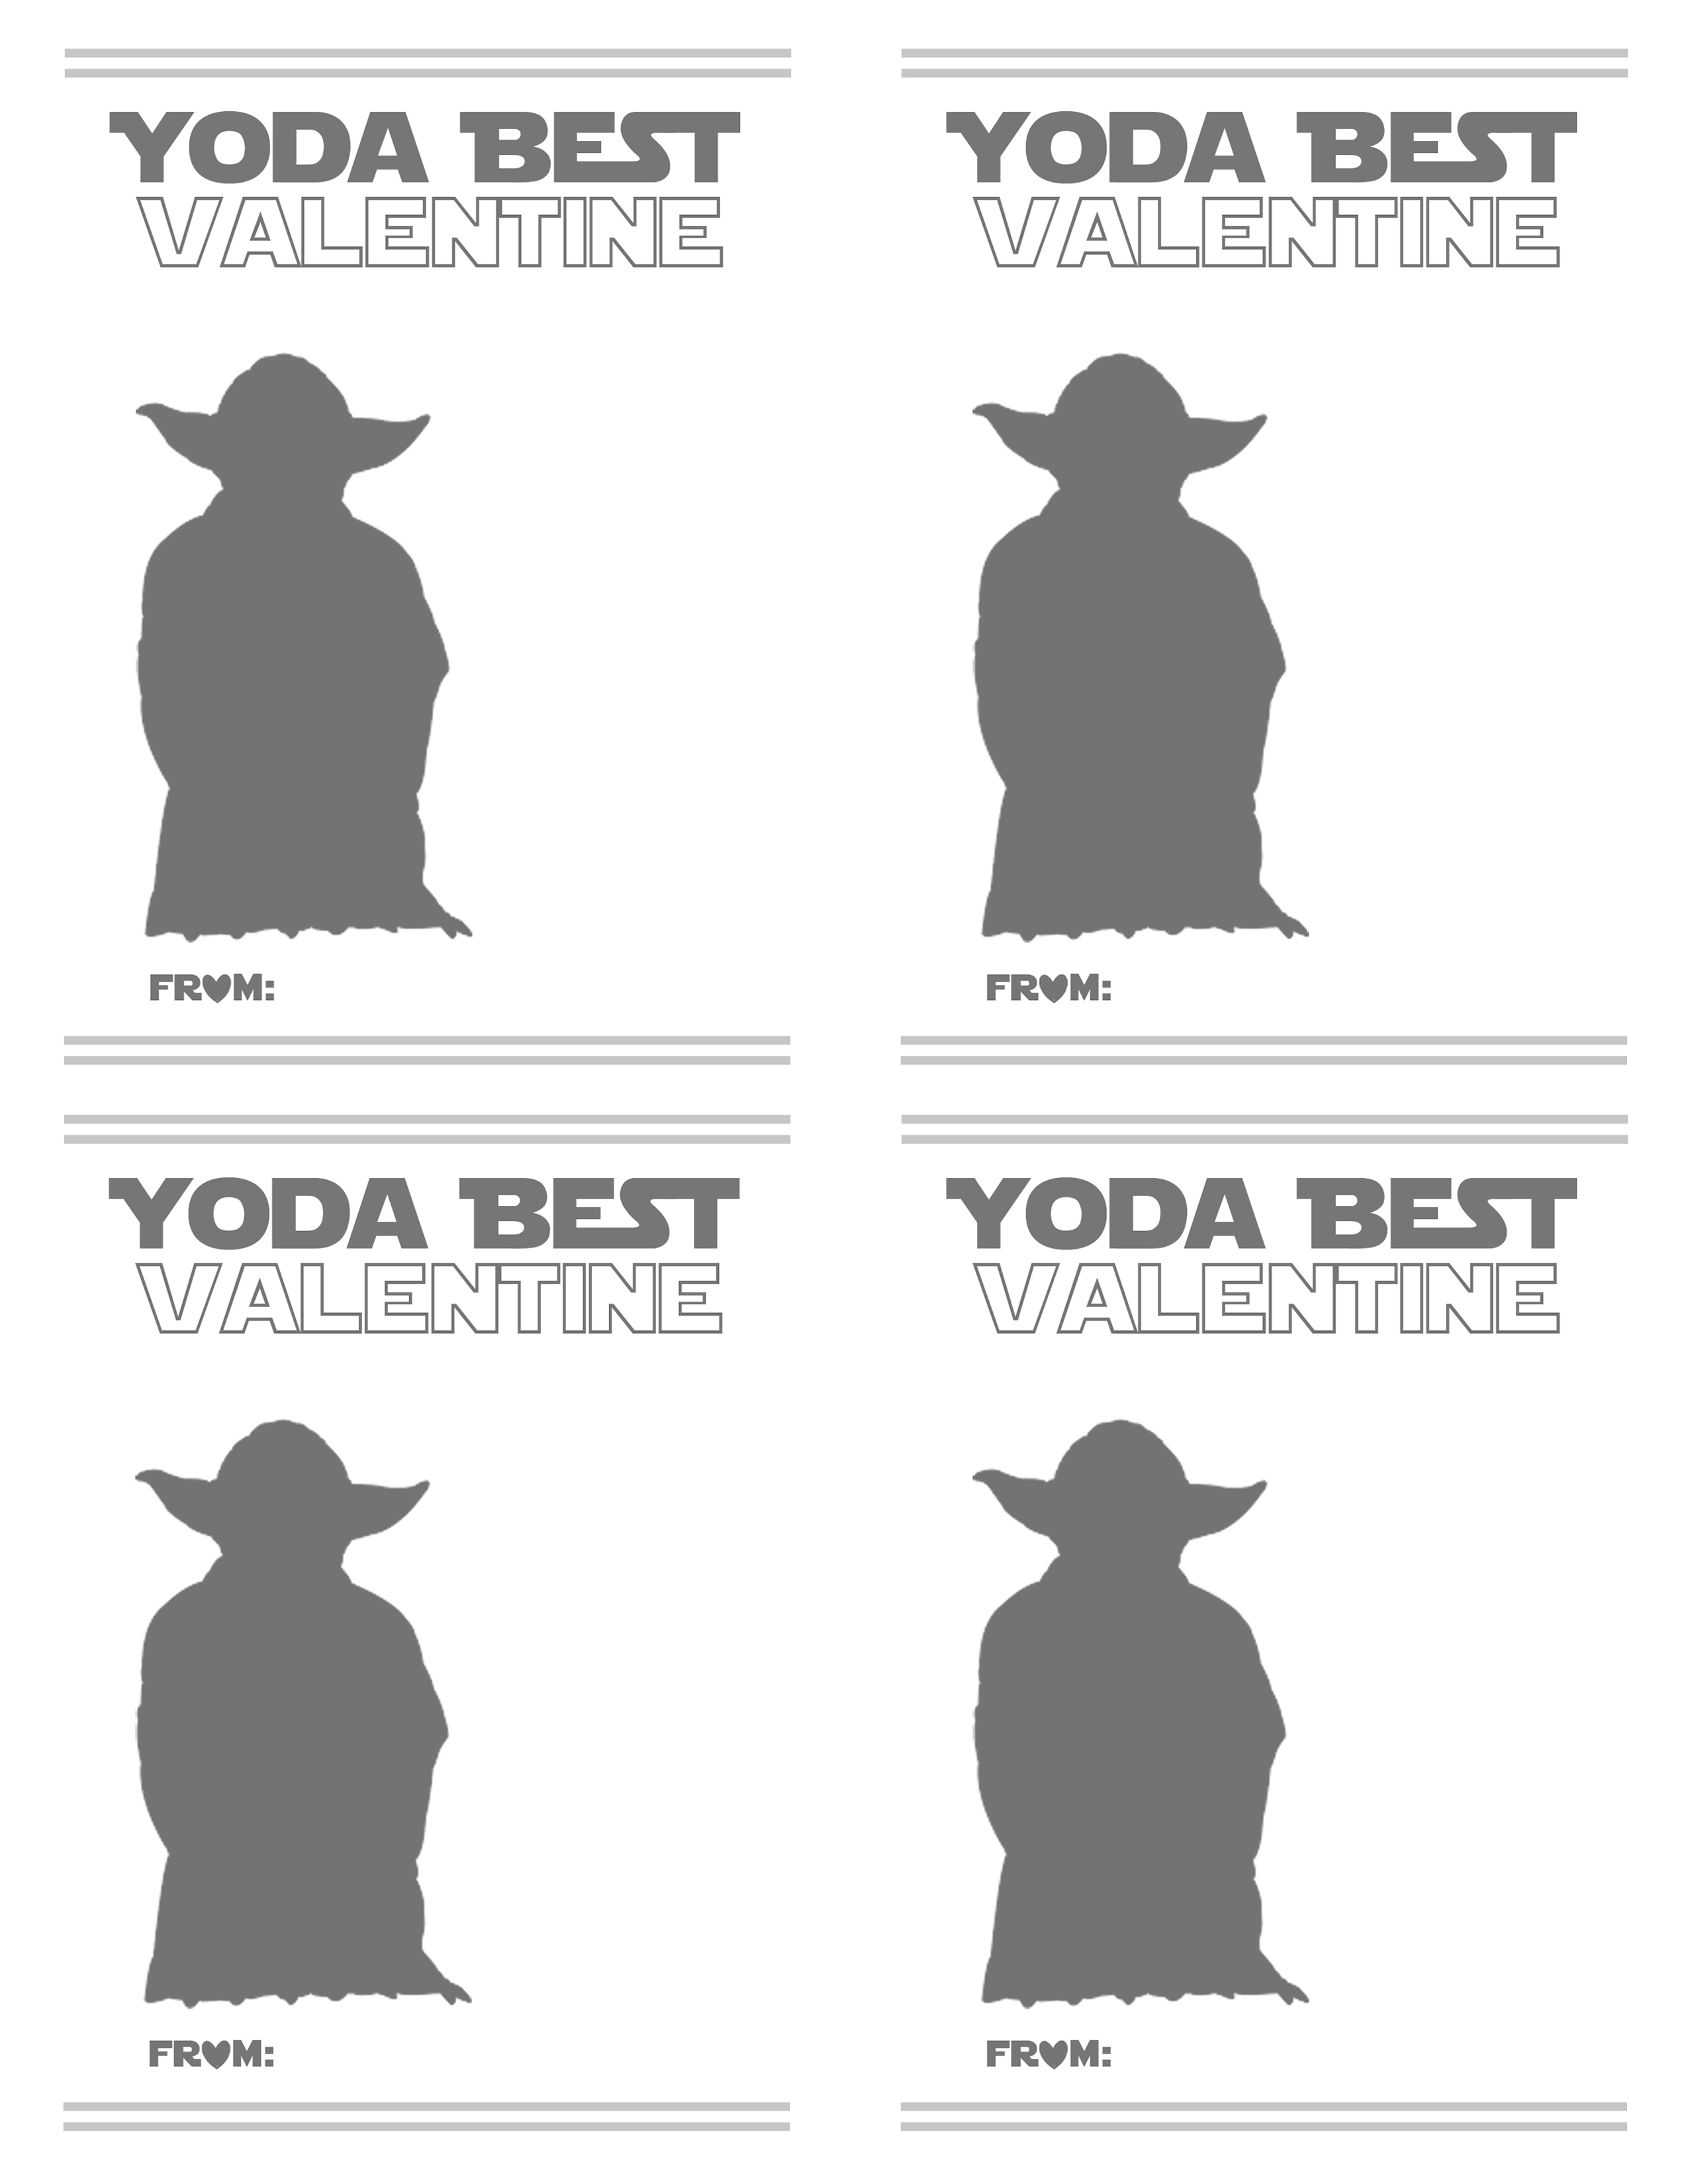 image about Yoda Printable referred to as F R E E Valentine Card Printables (\